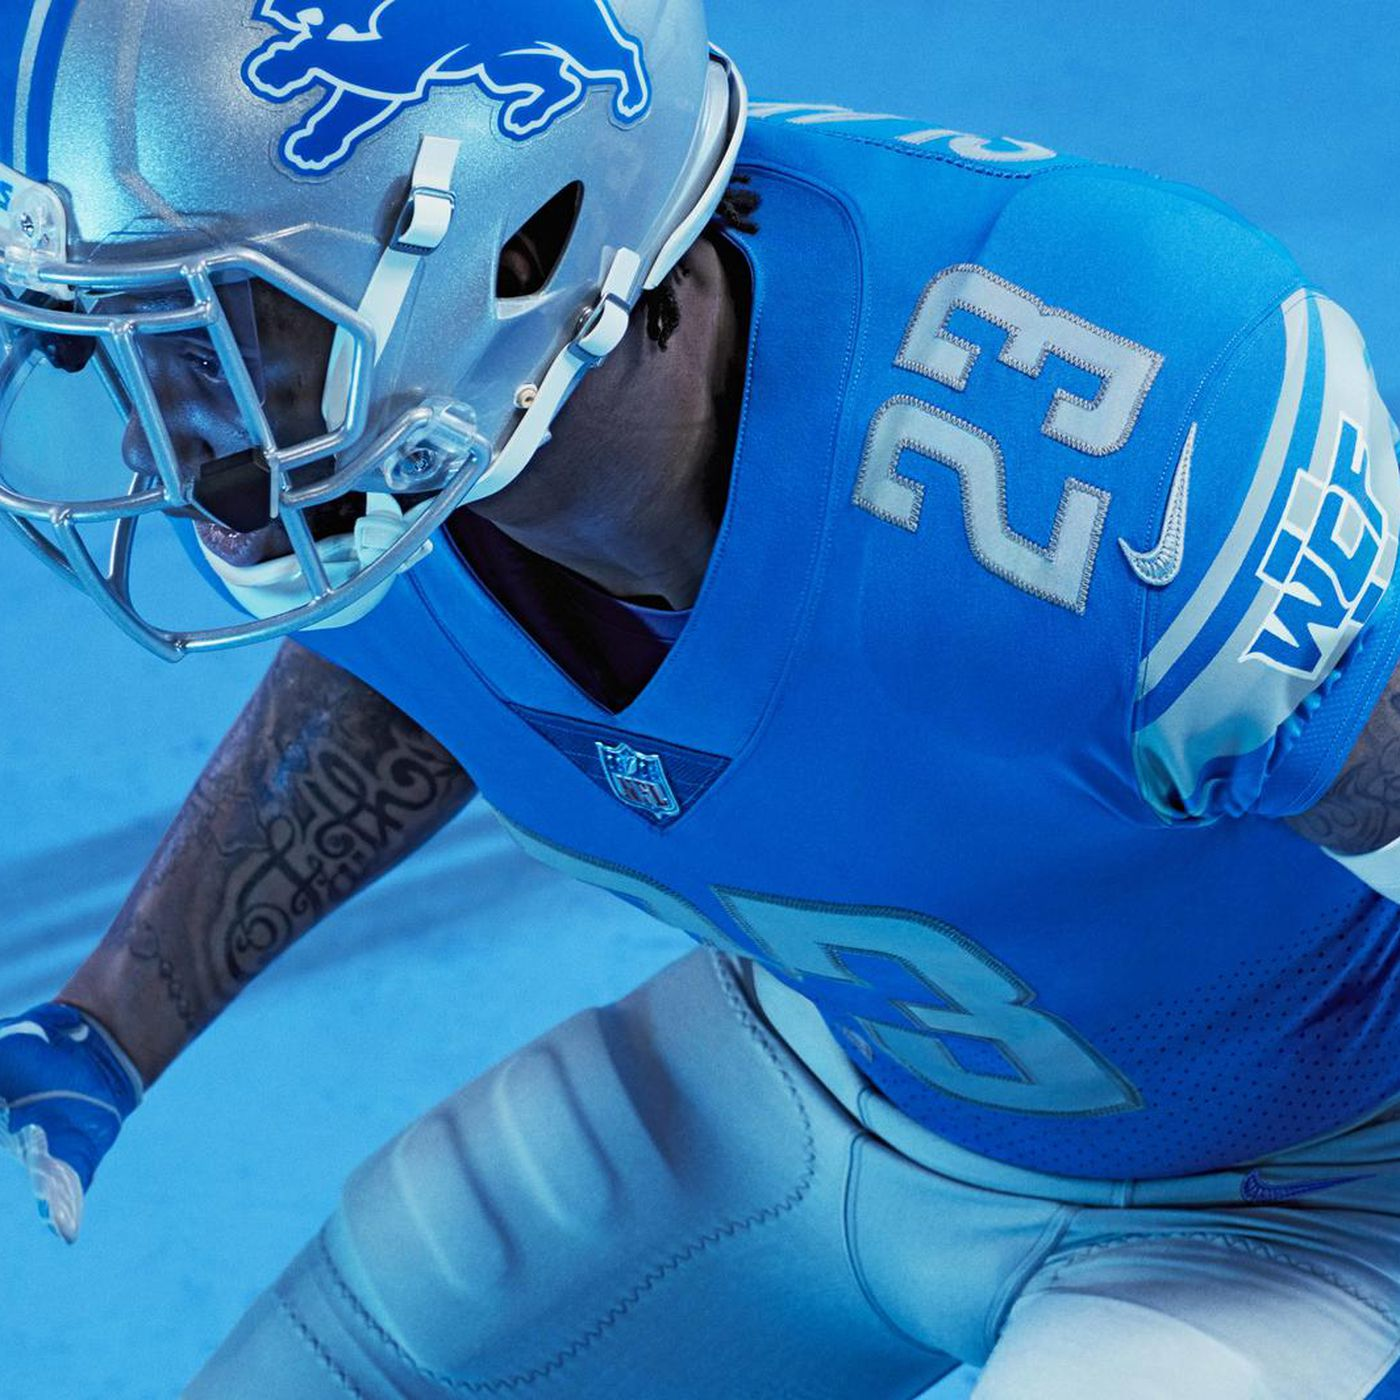 the best attitude 92e6f 89277 Lions' new uniforms look awfully similar to their old ones ...